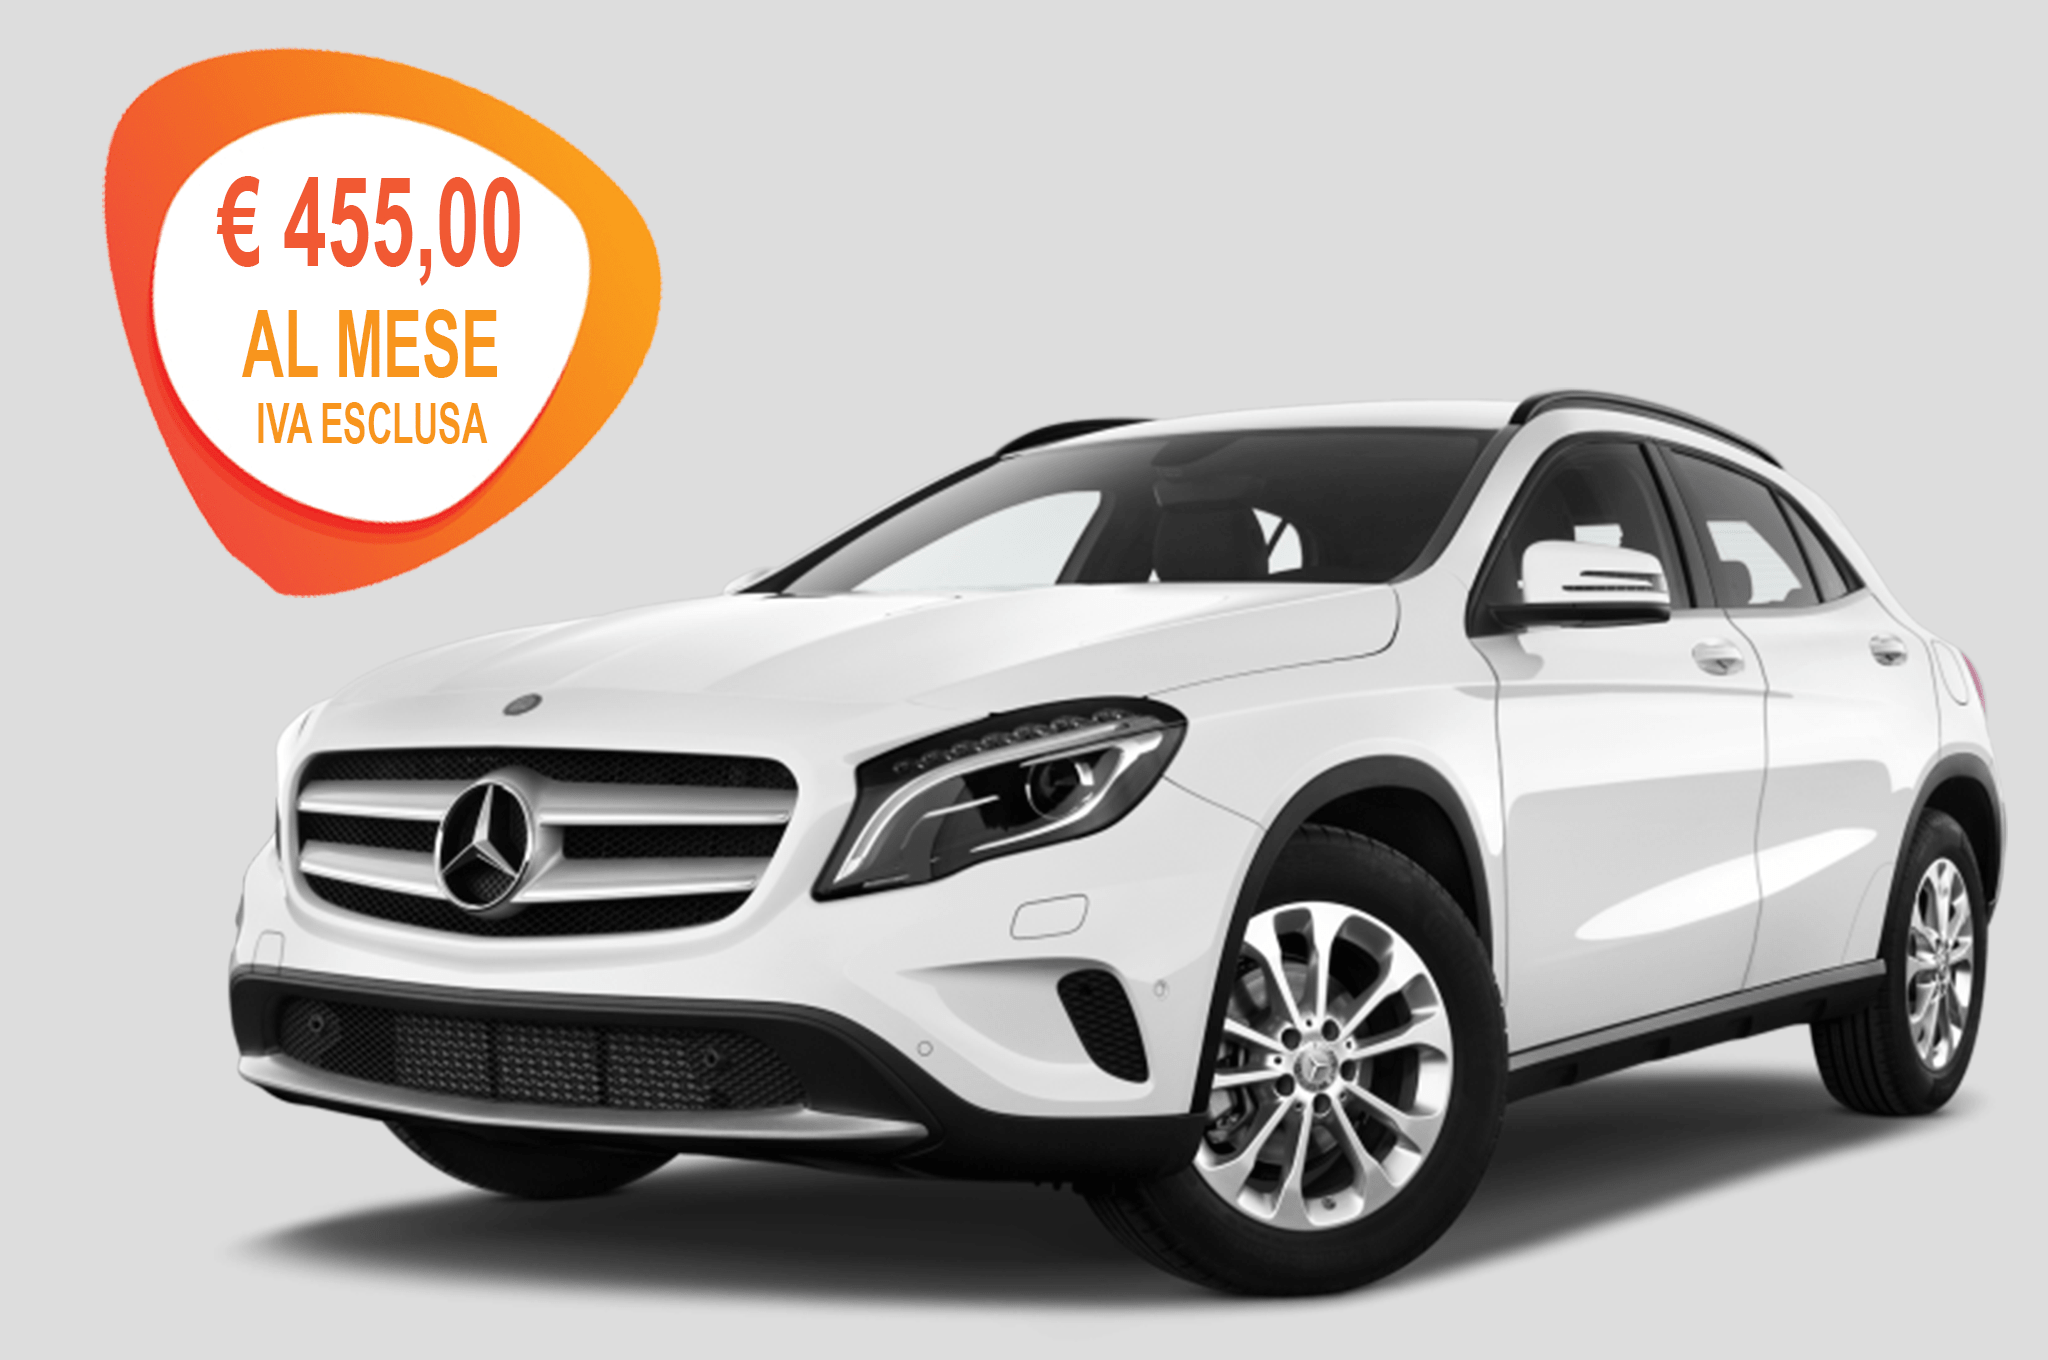 MERCEDES GLA-CLASS Gla 200 D Automatic Business